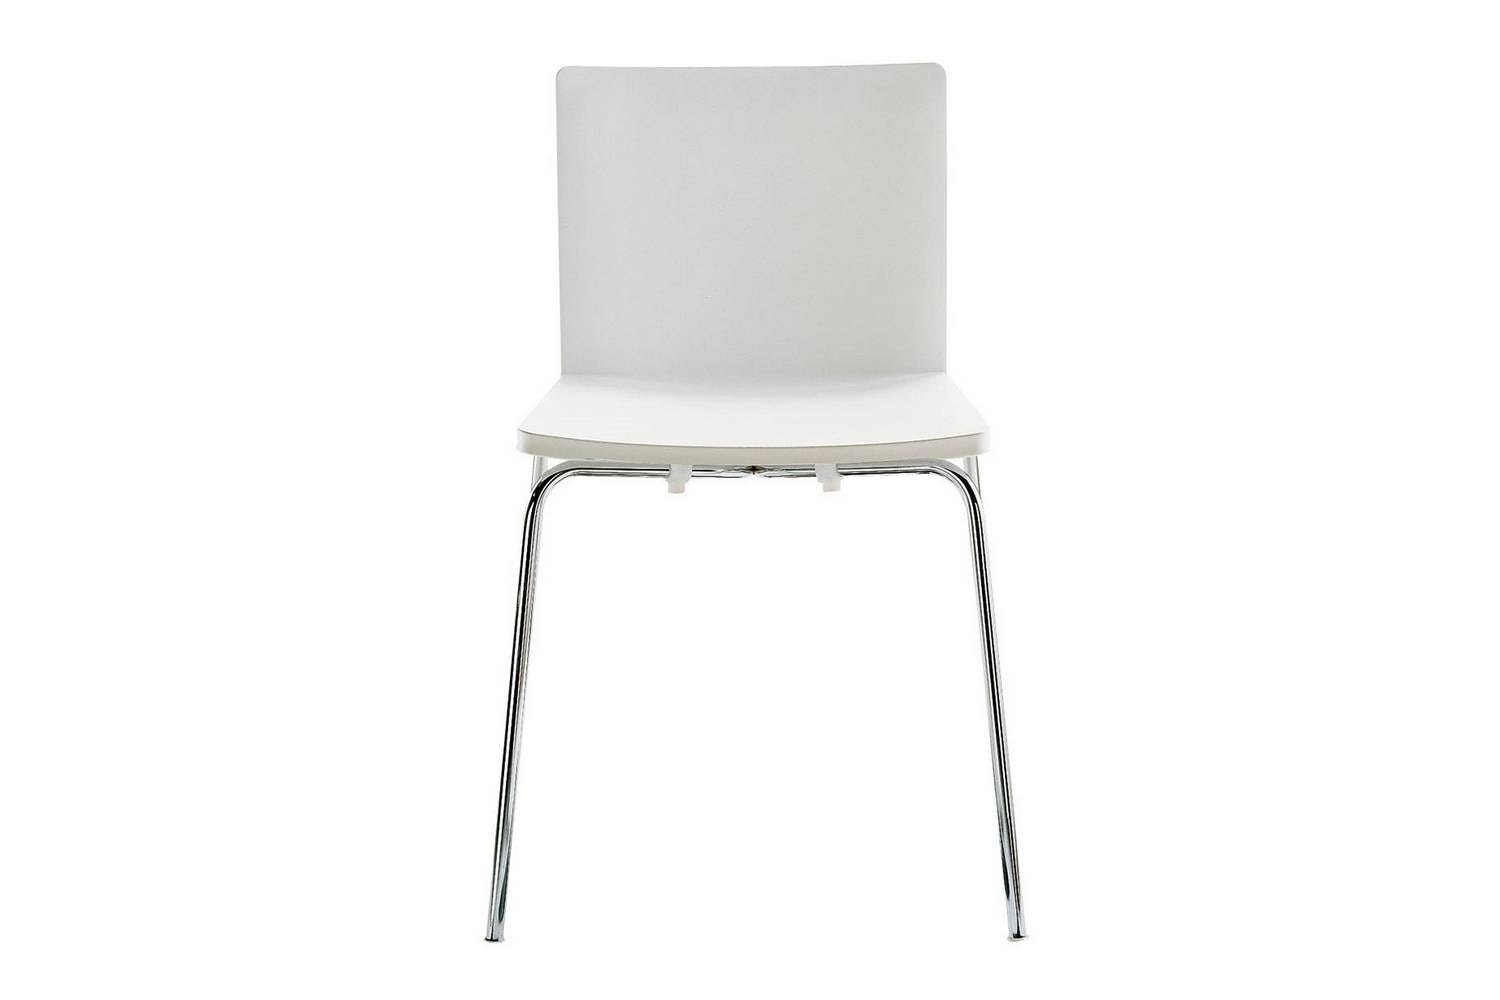 Nex Chair by Mario Mazzer for Poliform